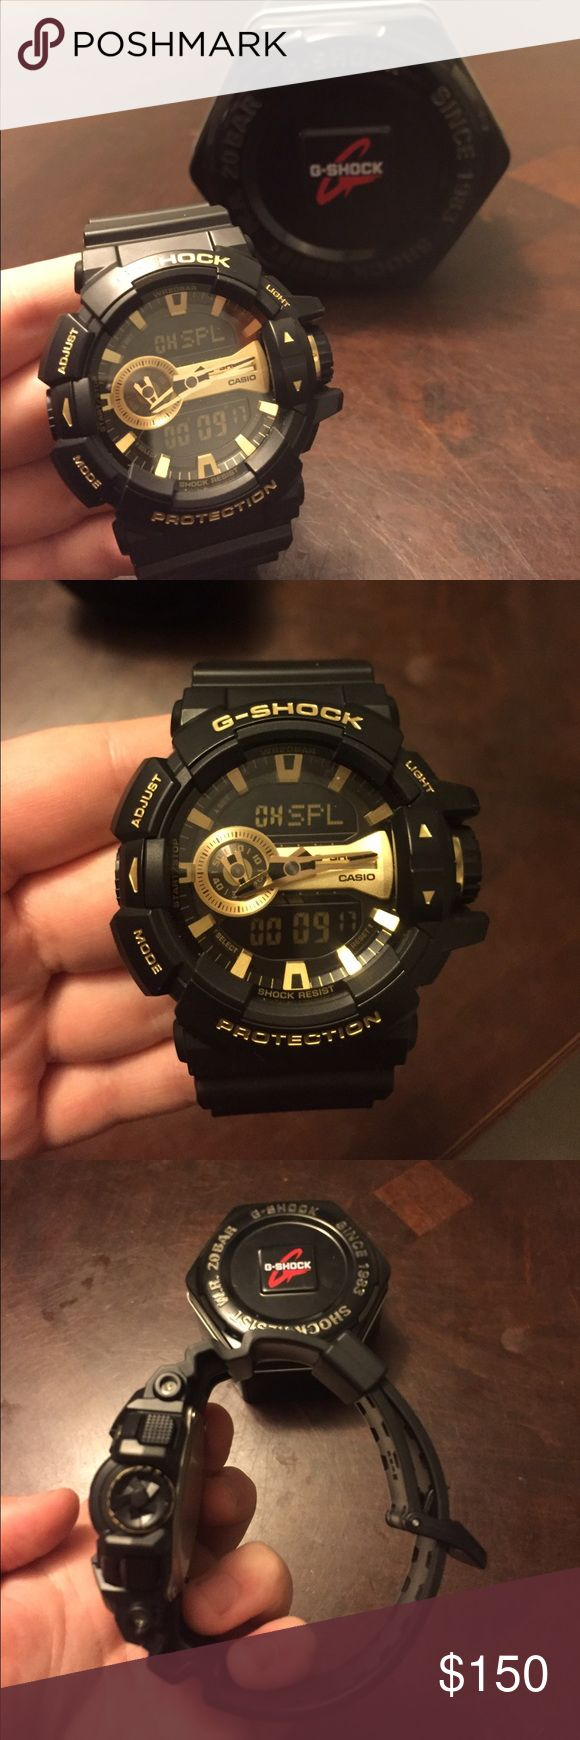 Black And Gold Brand New G Shock Has Adjust Mode Light Perfect Condition Never Worn Still With Tag Ing For Original Price Obo